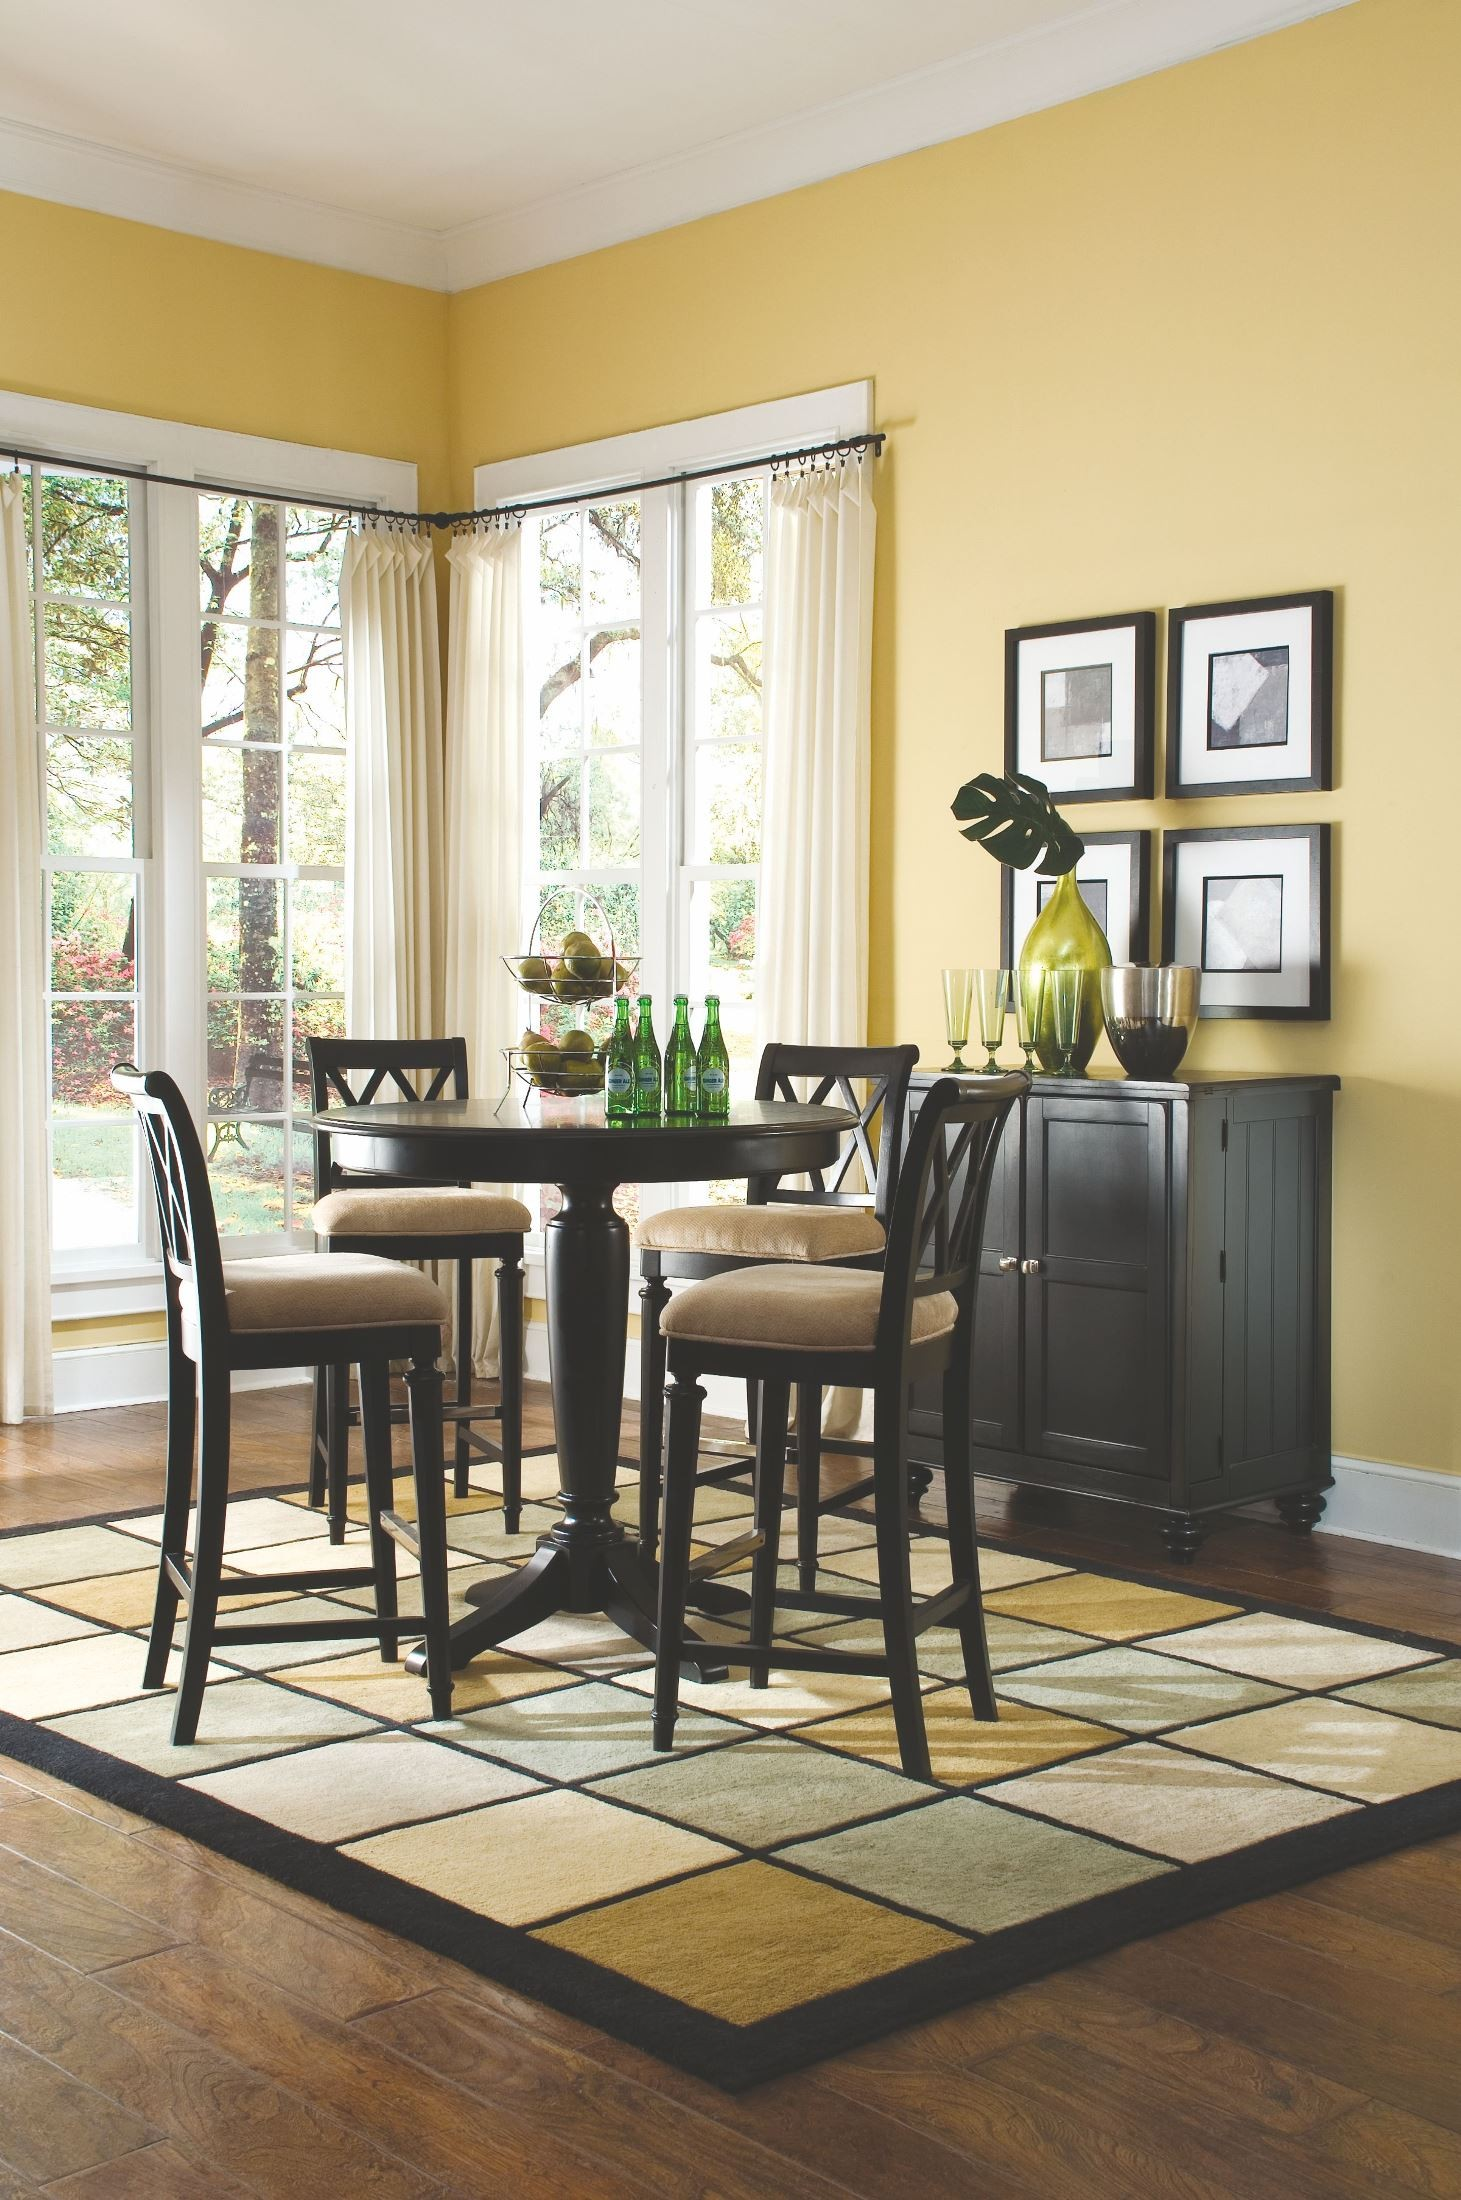 camden black round counter height pedestal dining room set from american drew 919 707r. Black Bedroom Furniture Sets. Home Design Ideas